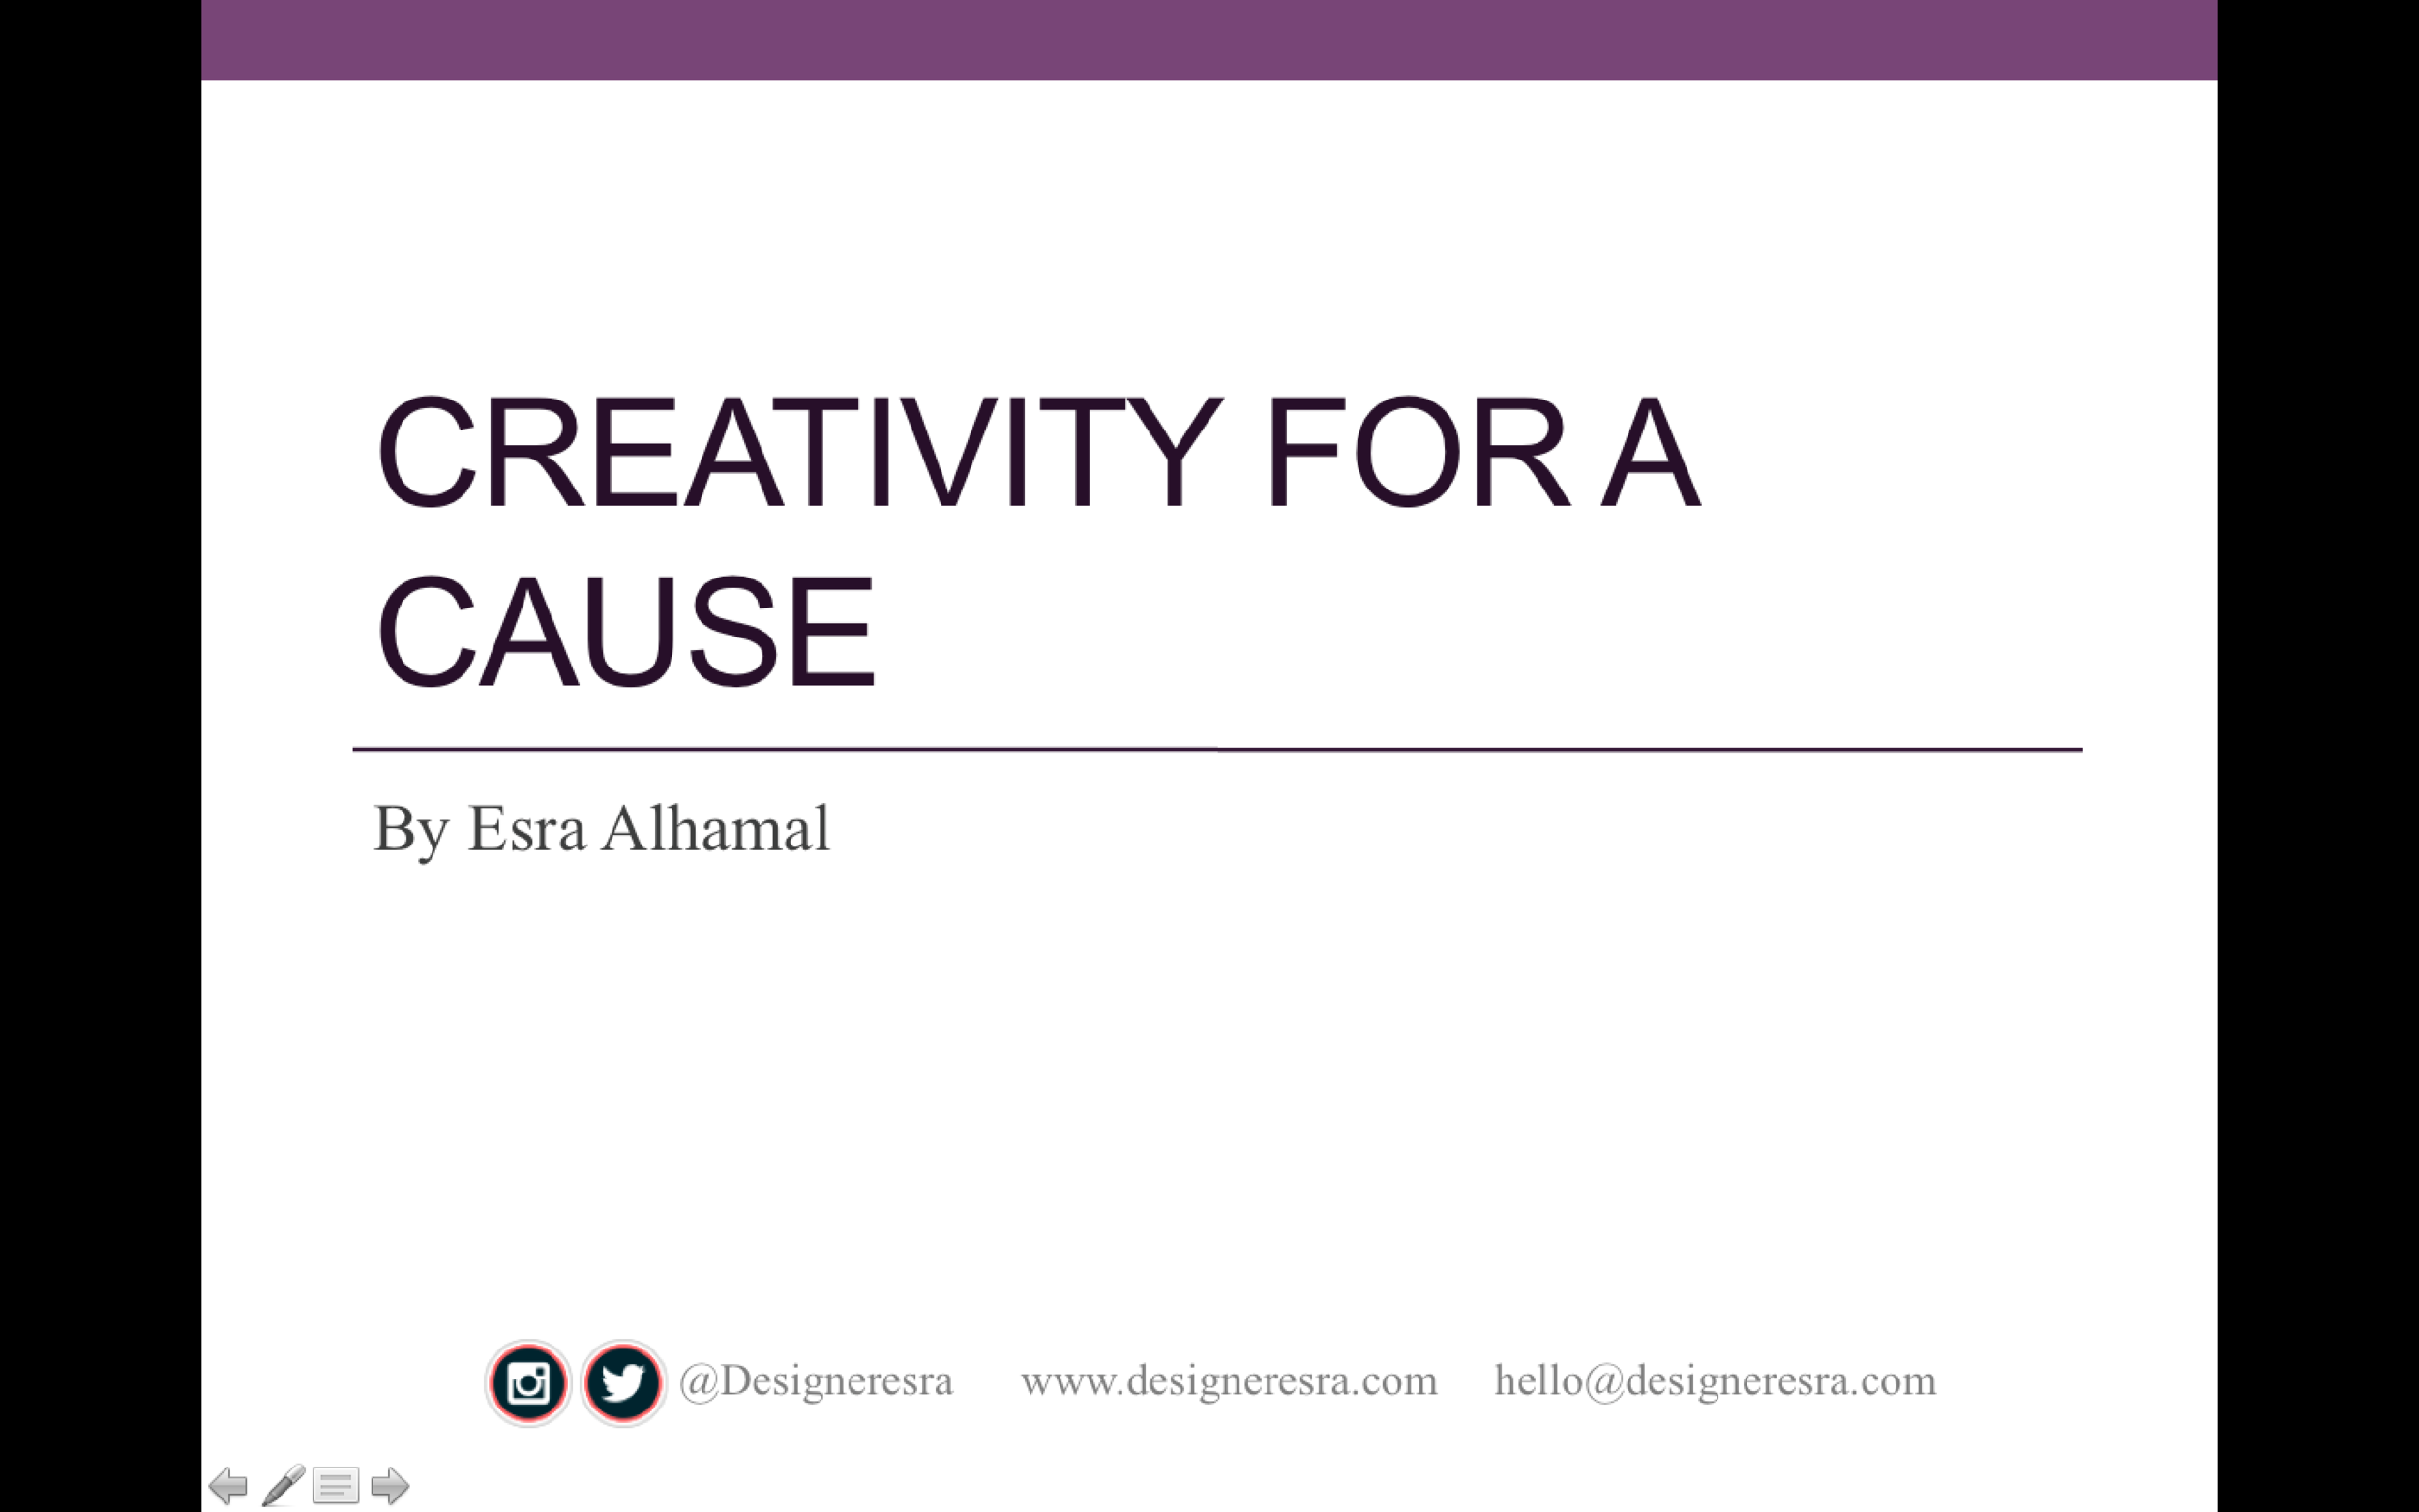 Motivational Talk for Creativity for a Cause